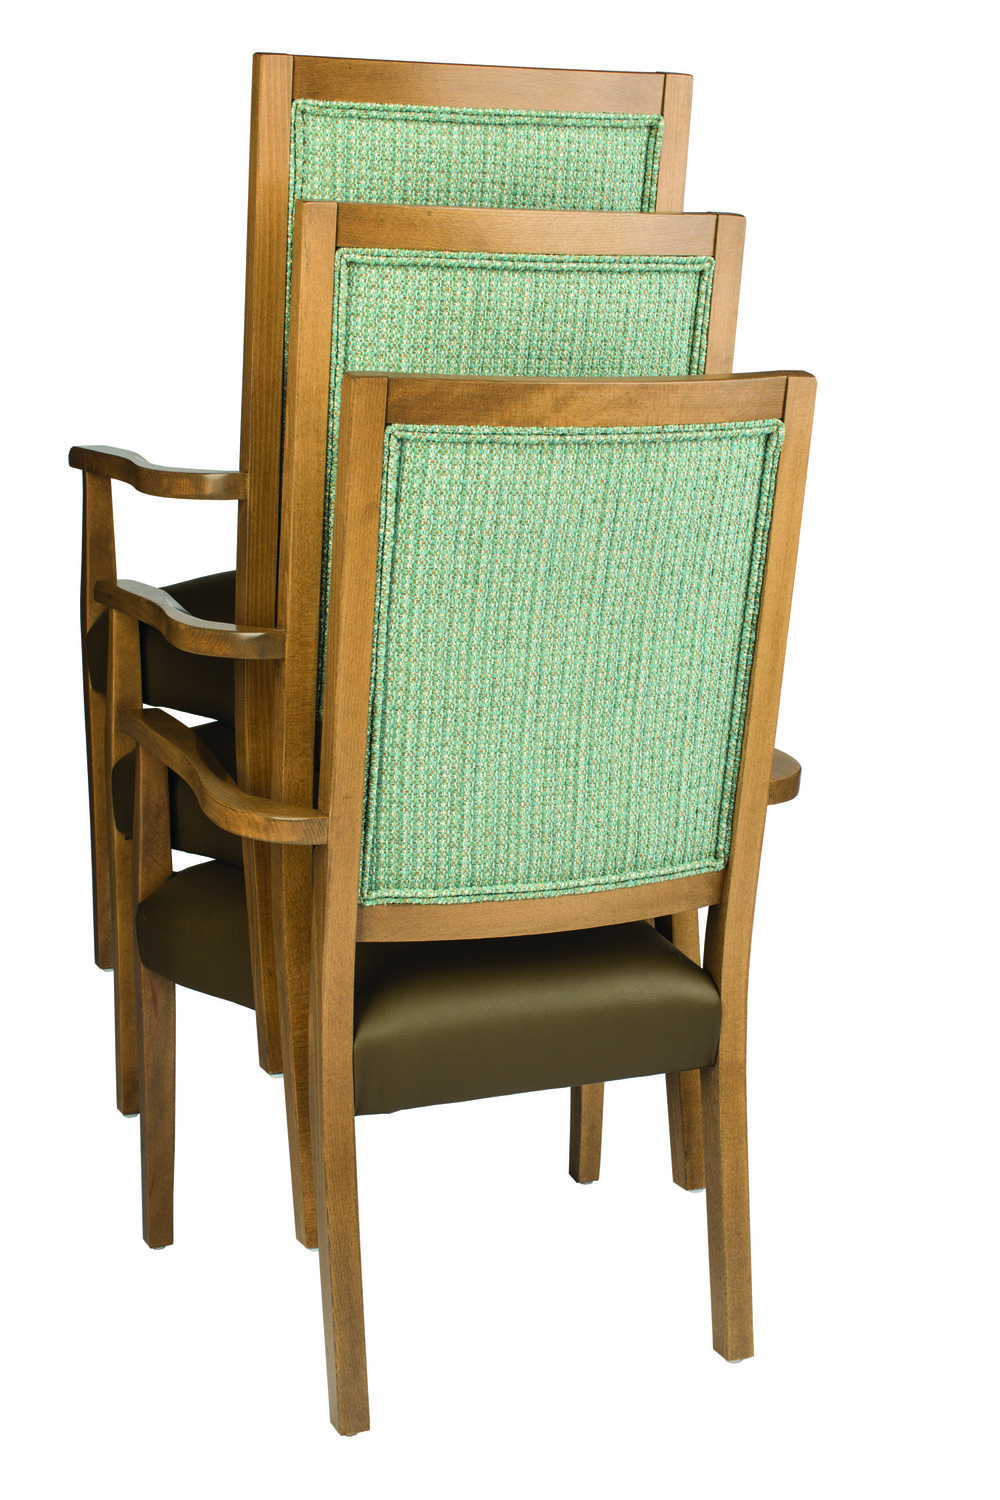 Easton_Armchair_STACK_226-SBC,_OSB_Kravet_30962-135,_ISB_Kravet_31393-613,_Seat_Jennis_Turner_Tan_802_(Back).jpg